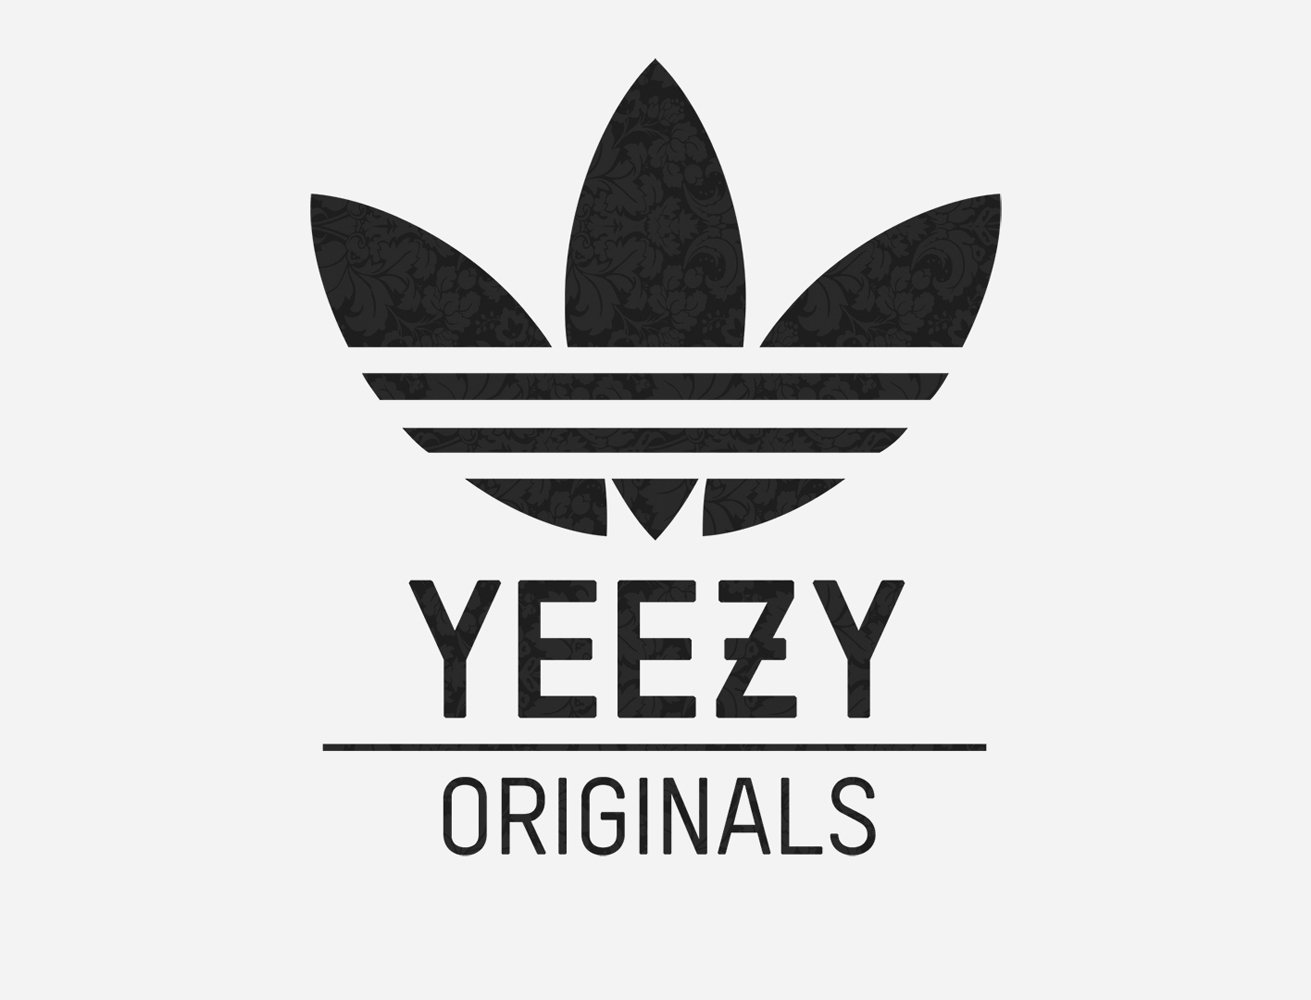 Yeezy logo yeezy symbol meaning history and evolution as a result of collaboration with louis vuitton three different shoes appeared in 2009 they were named after people close to kanye biocorpaavc Images